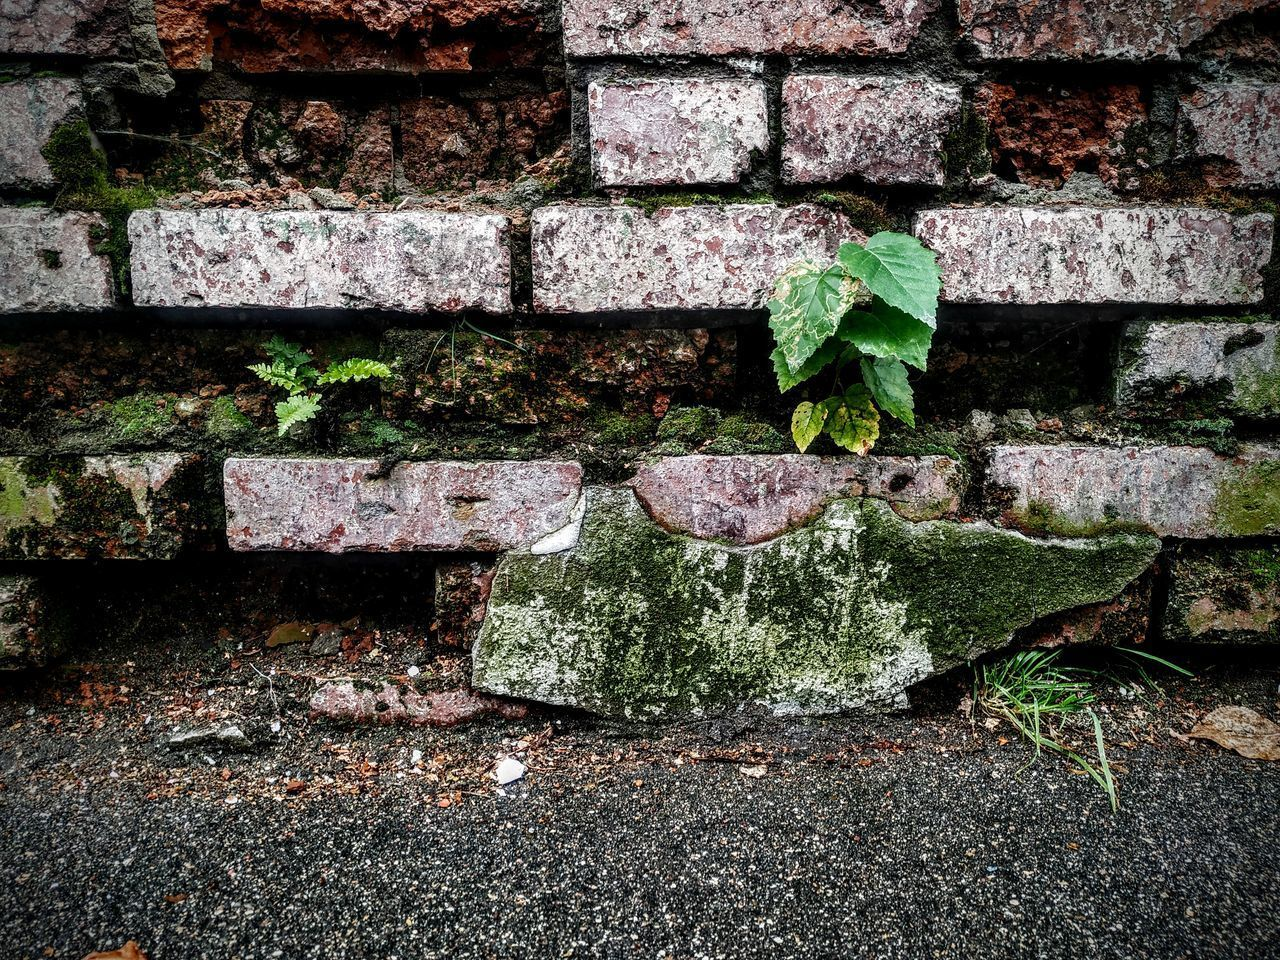 CLOSE-UP OF BRICK WALL WITH IVY